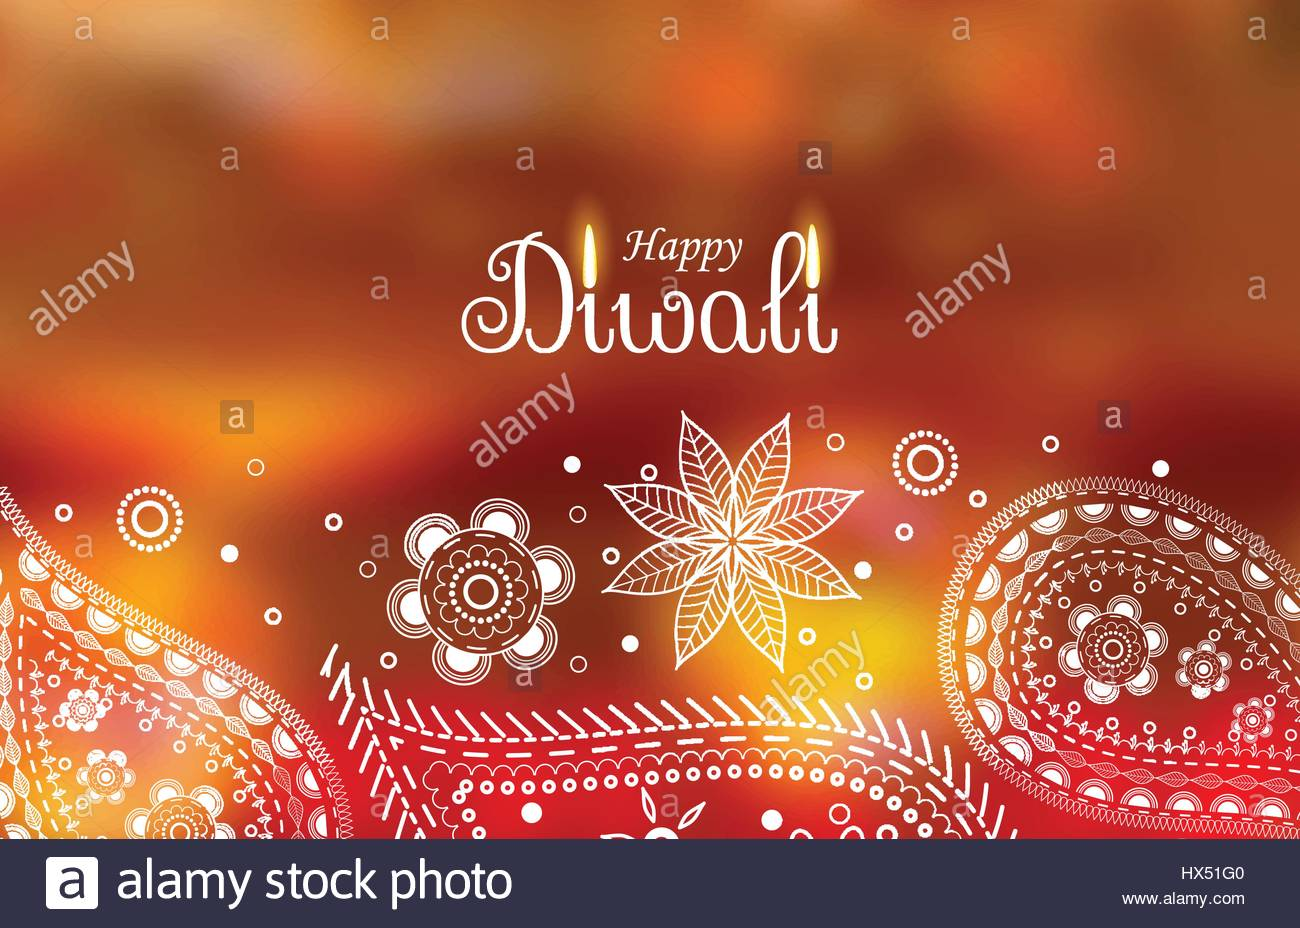 Beautiful ethnic happy diwali greeting stock photos beautiful diwali greeting wallpaper with paisley decoration stock image kristyandbryce Gallery